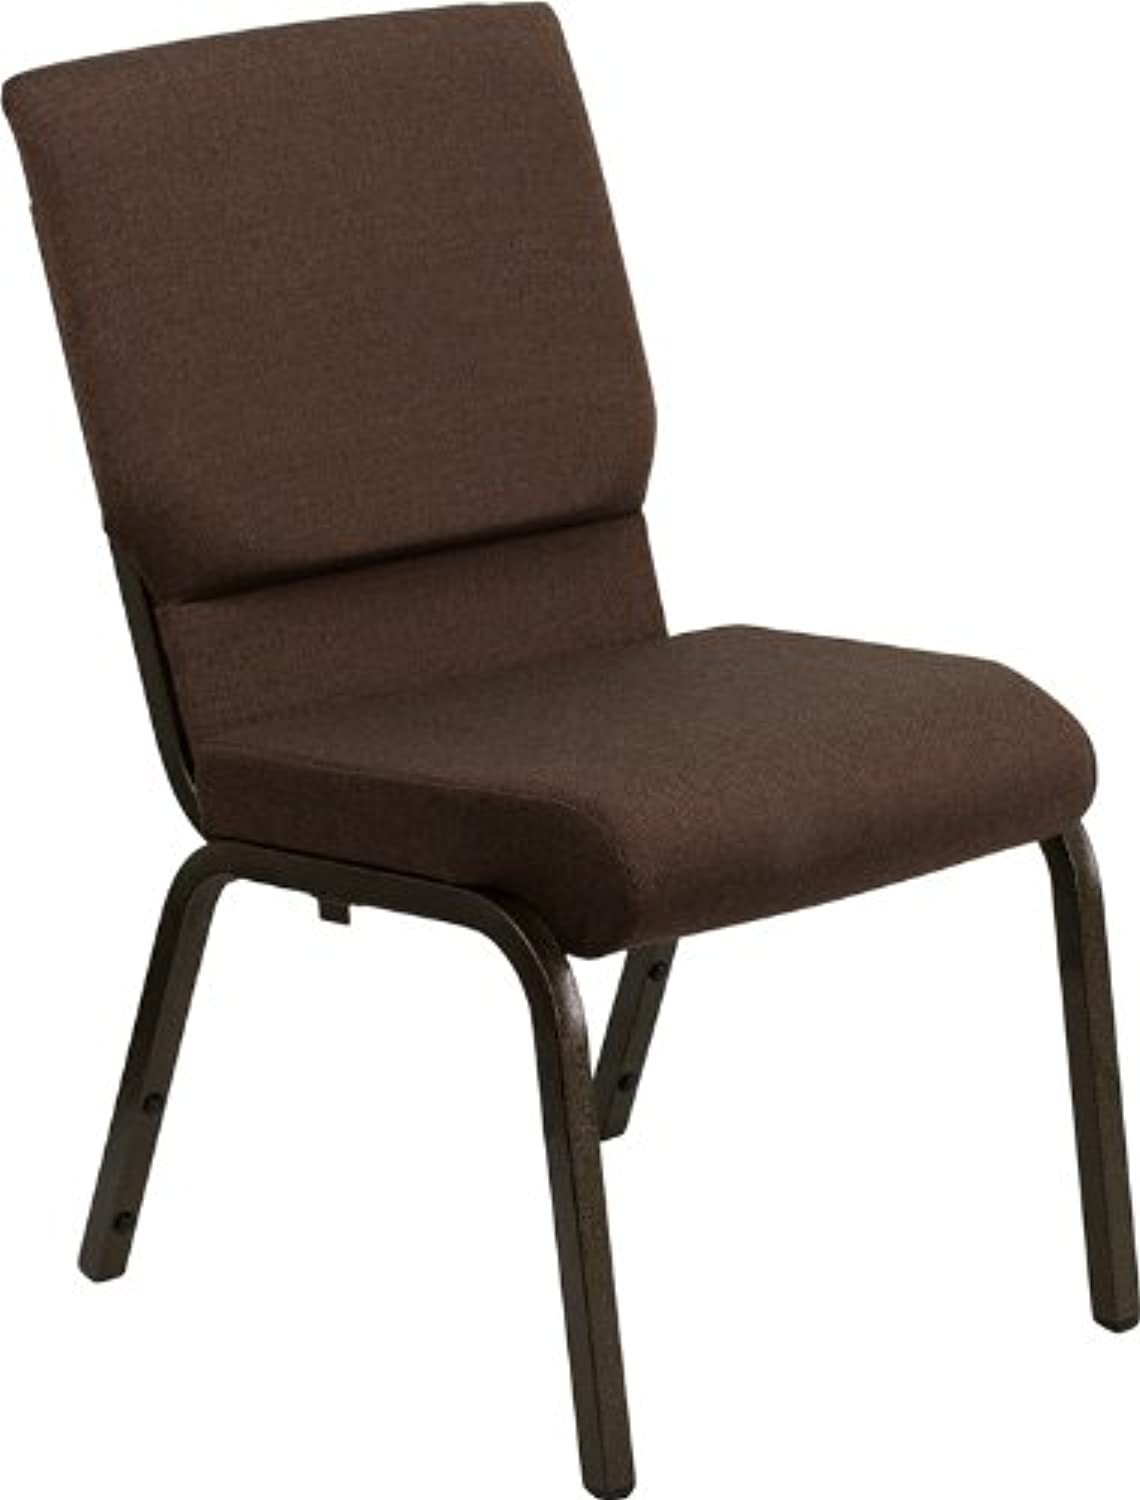 Flash Furniture Hercules Series 18.5''W Stacking Church Chair in Brown Fabric - gold Vein Frame